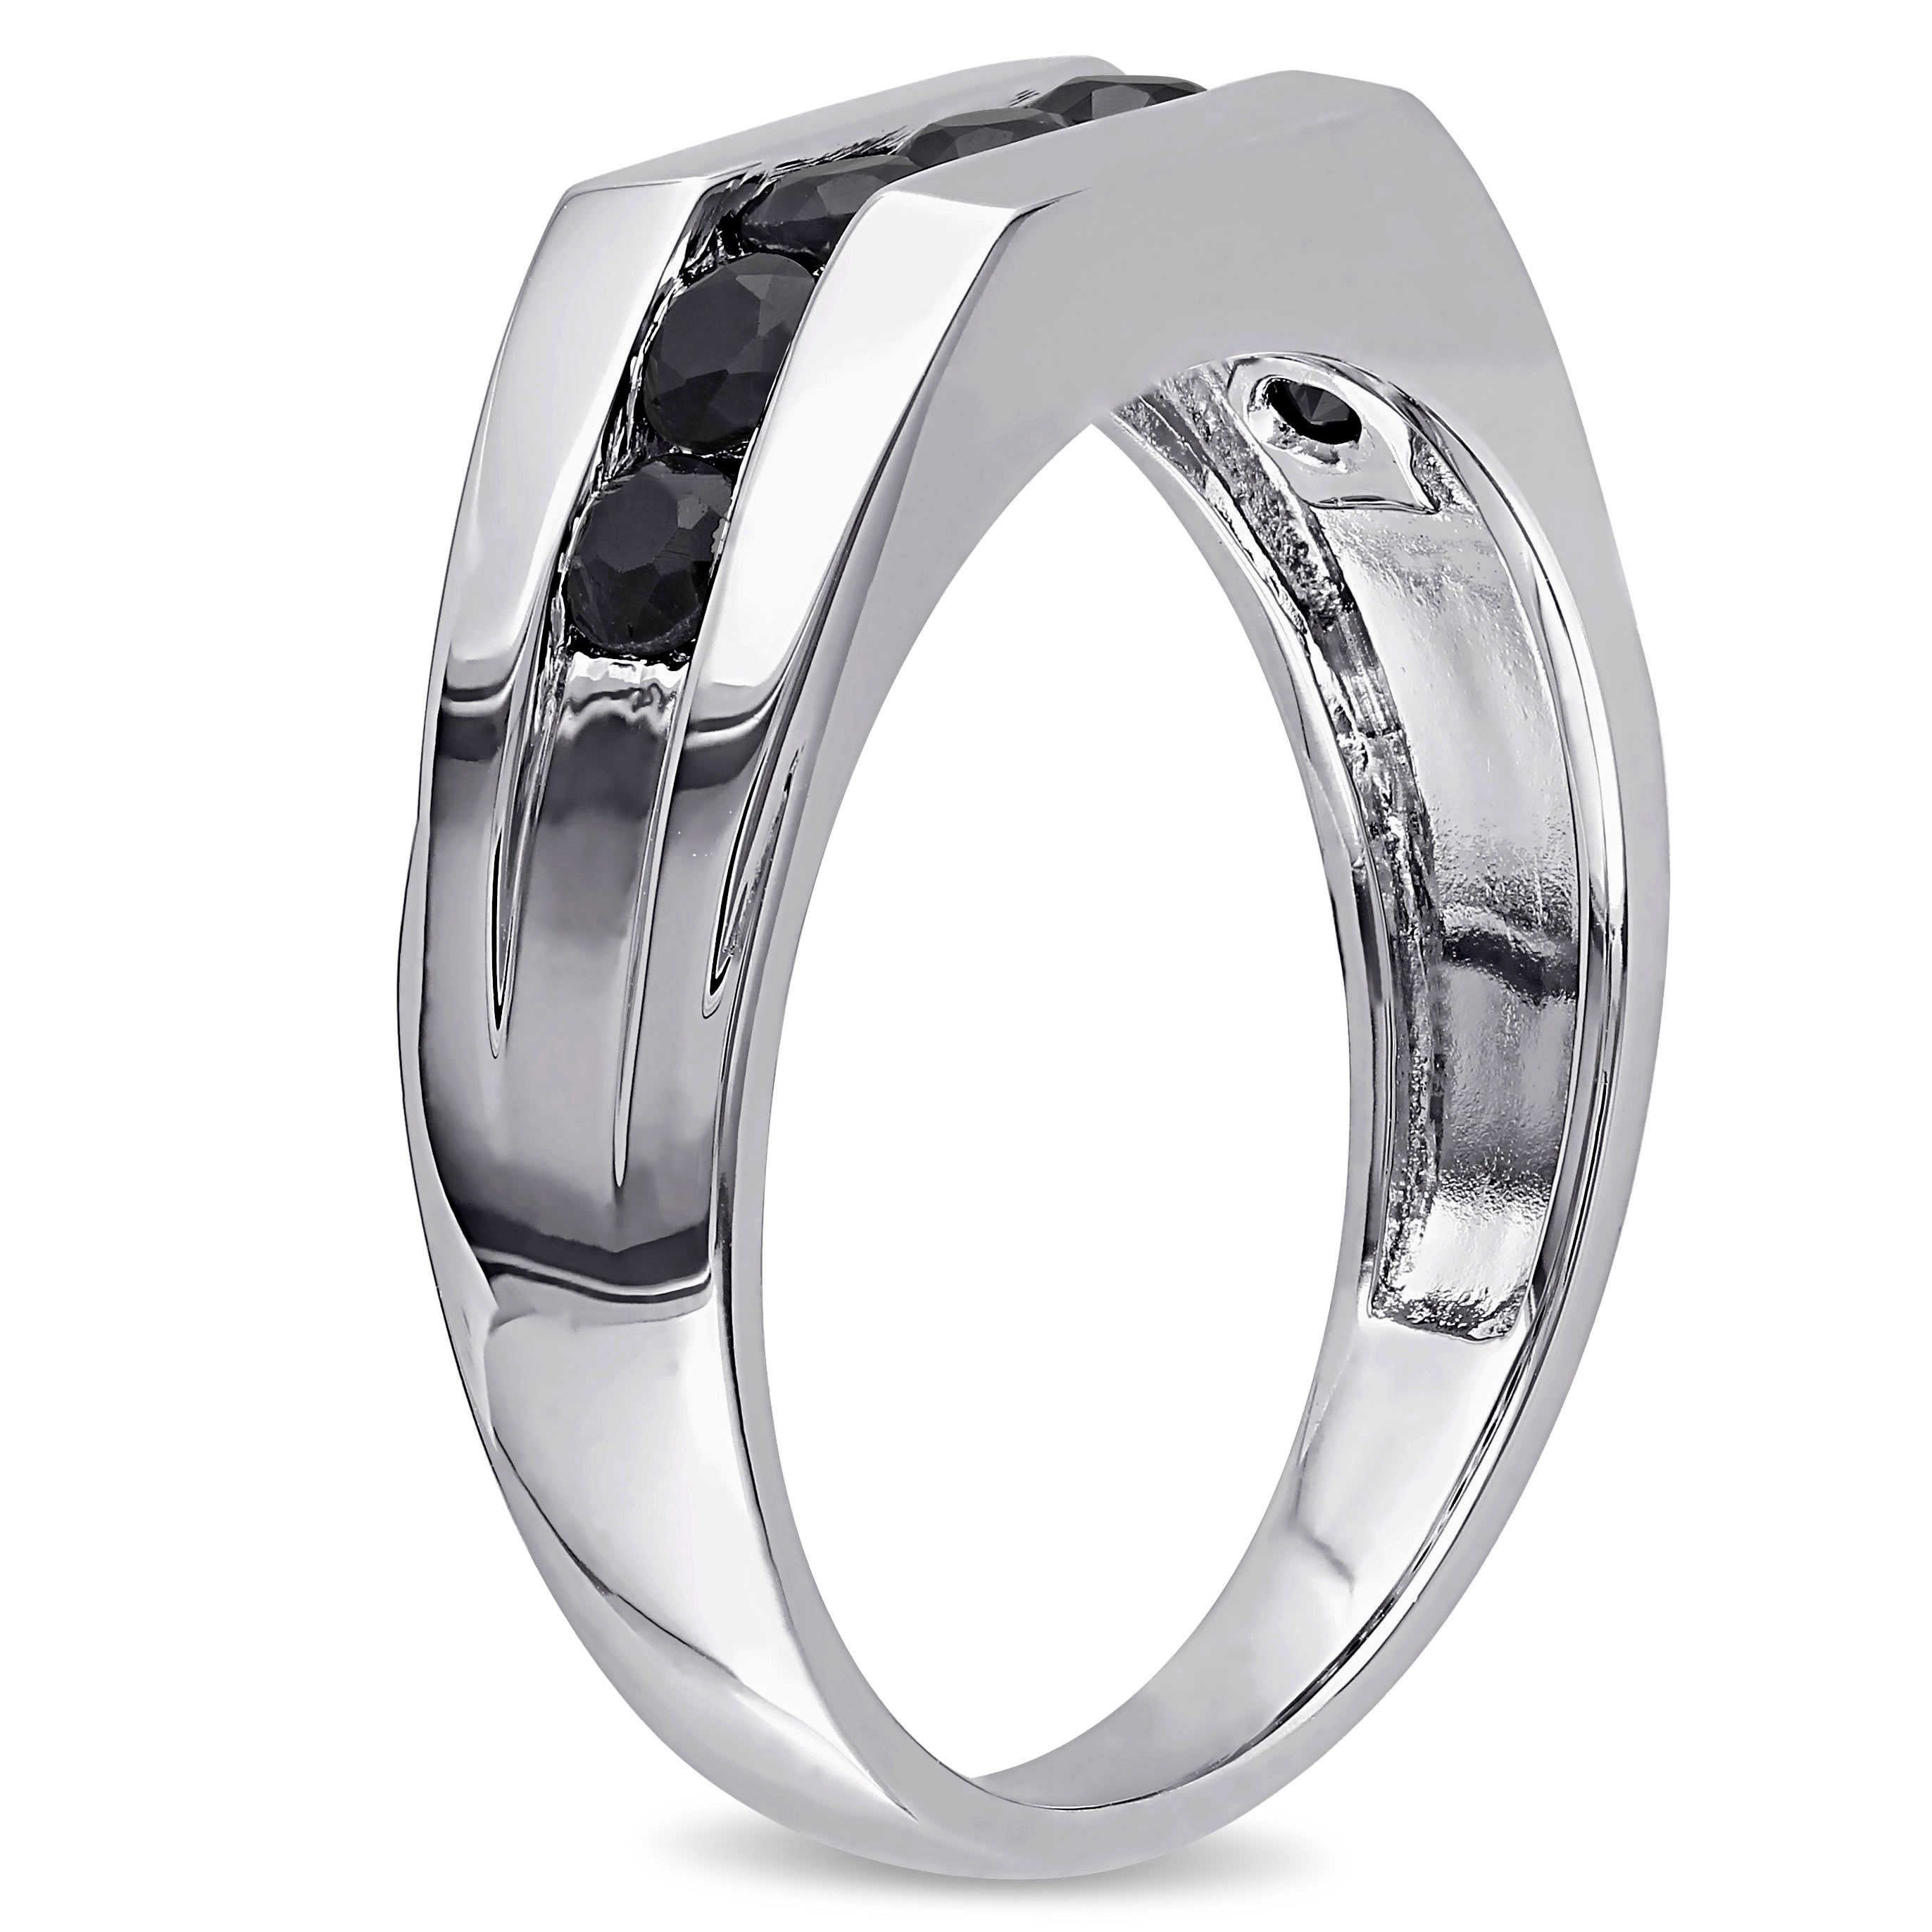 center bands groove platinum half in on band designer ring edges couple eternity by the products is finish jl rings jewelove plain mens pt milgrain a with